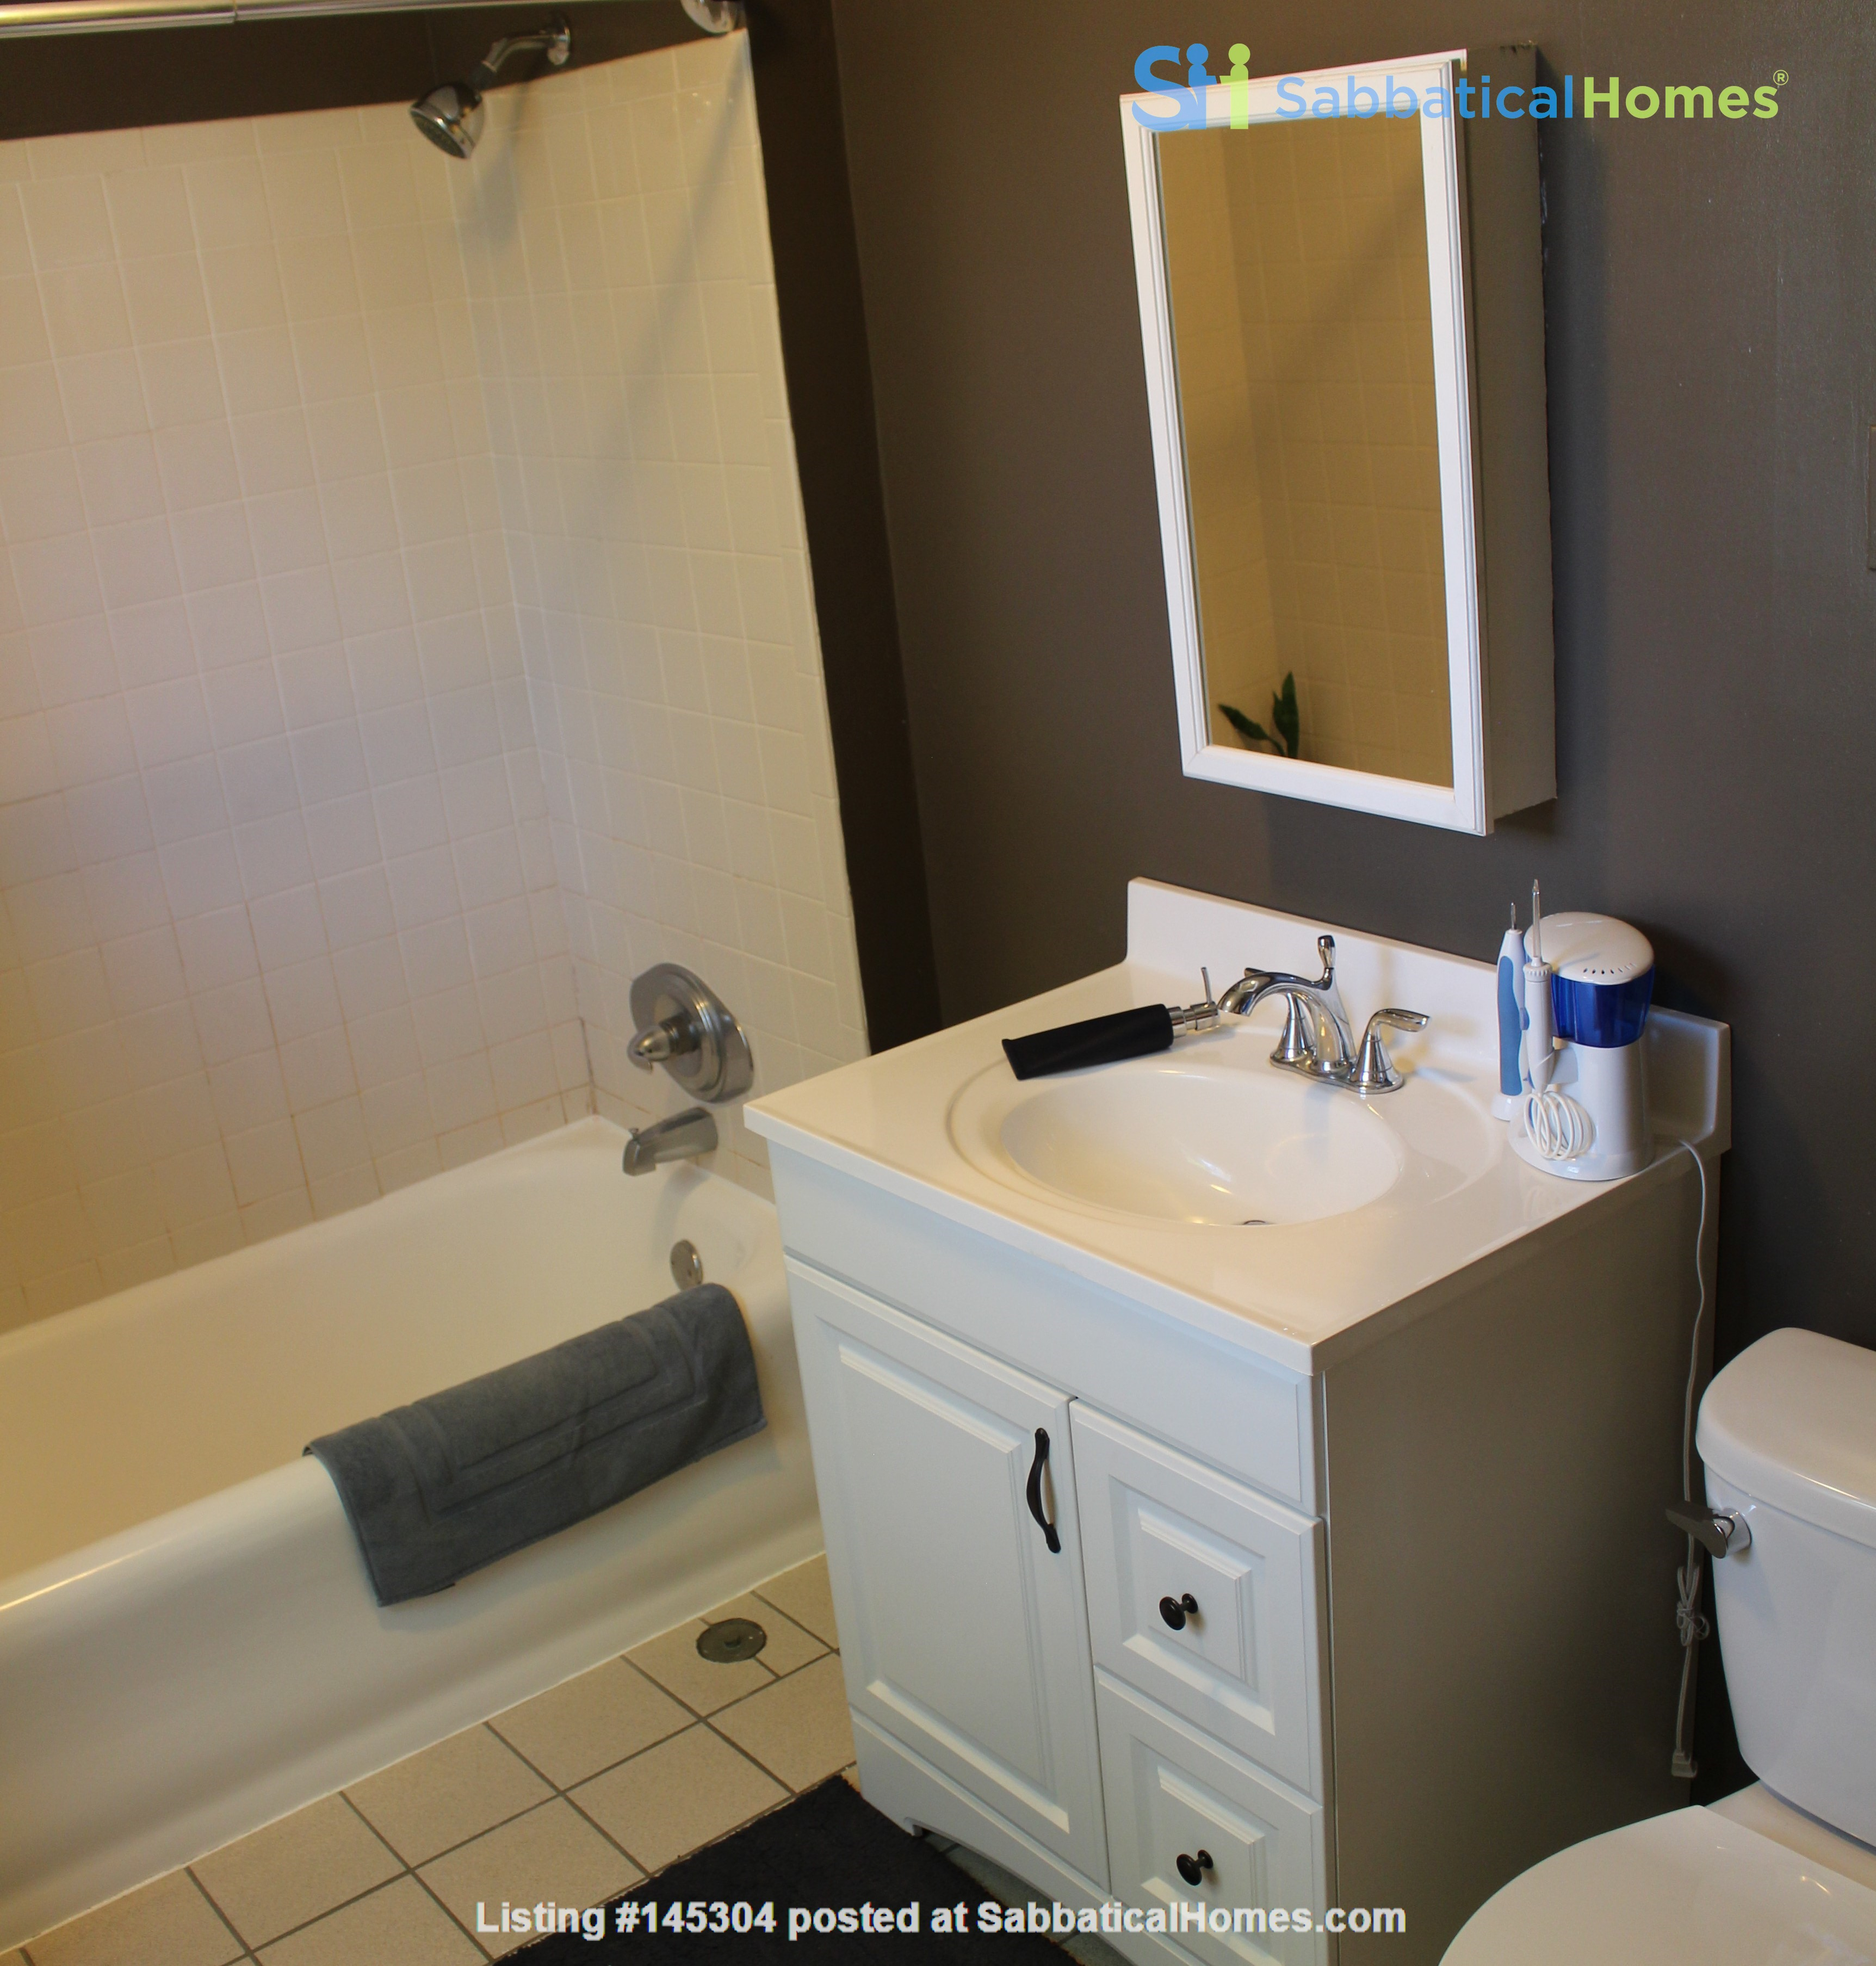 1 BR Condo for long-term lease comes w pool, gym and charm! Home Rental in Philadelphia, Pennsylvania, United States 7